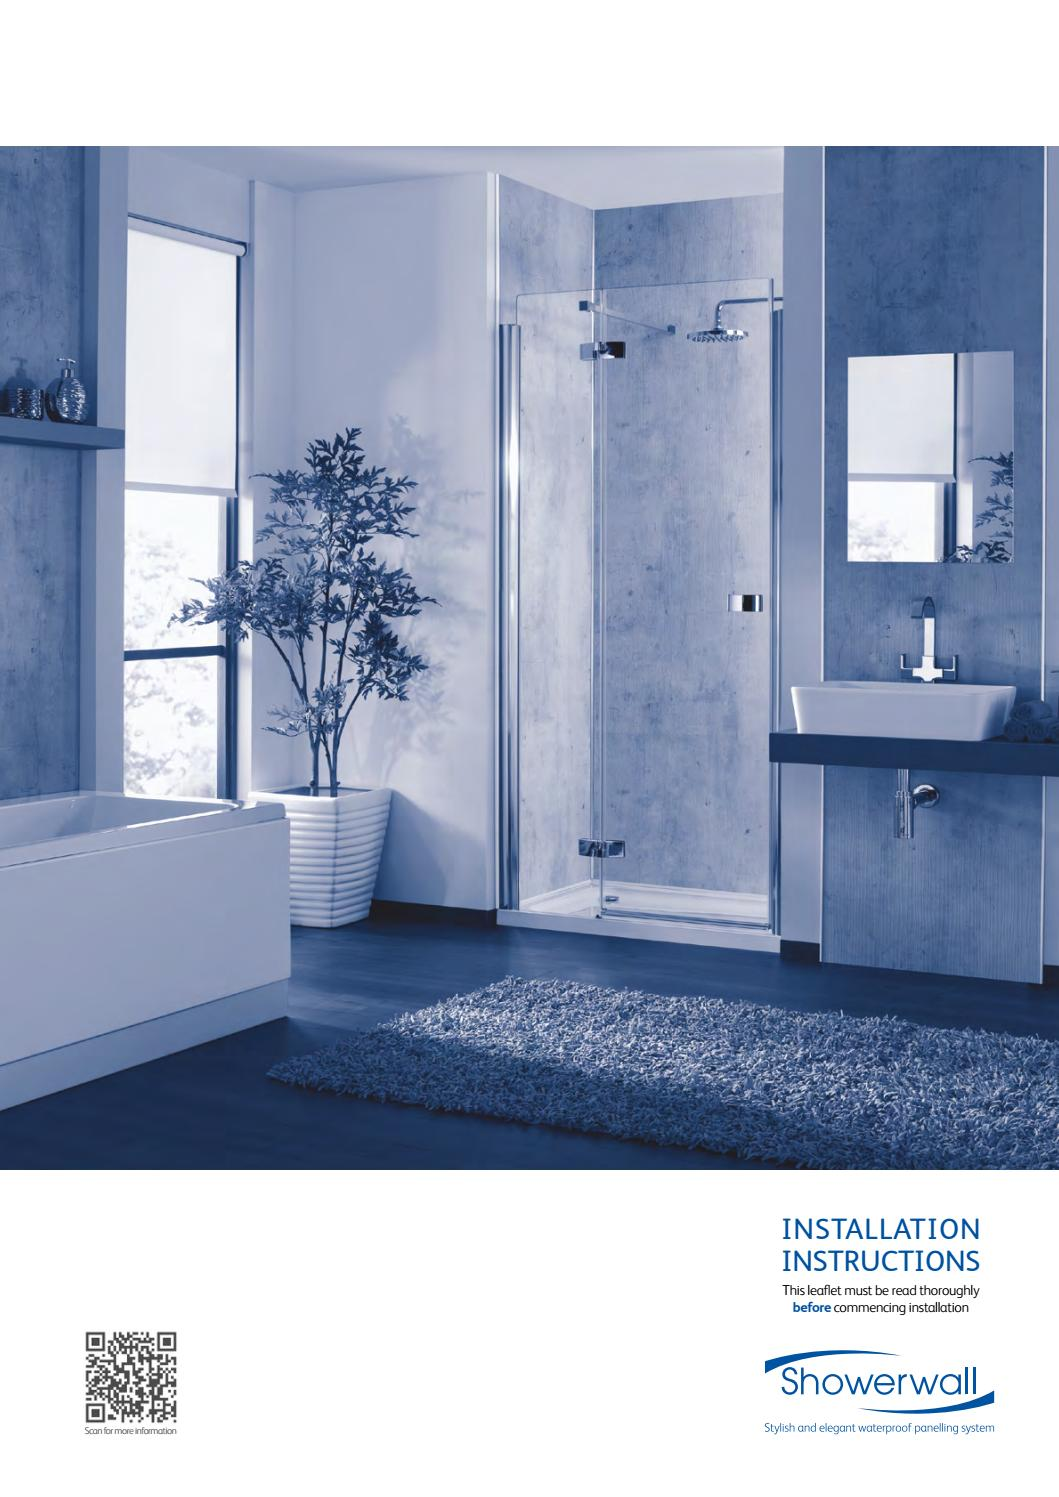 Showerwall Installation Instructions by IDSurfaces - issuu